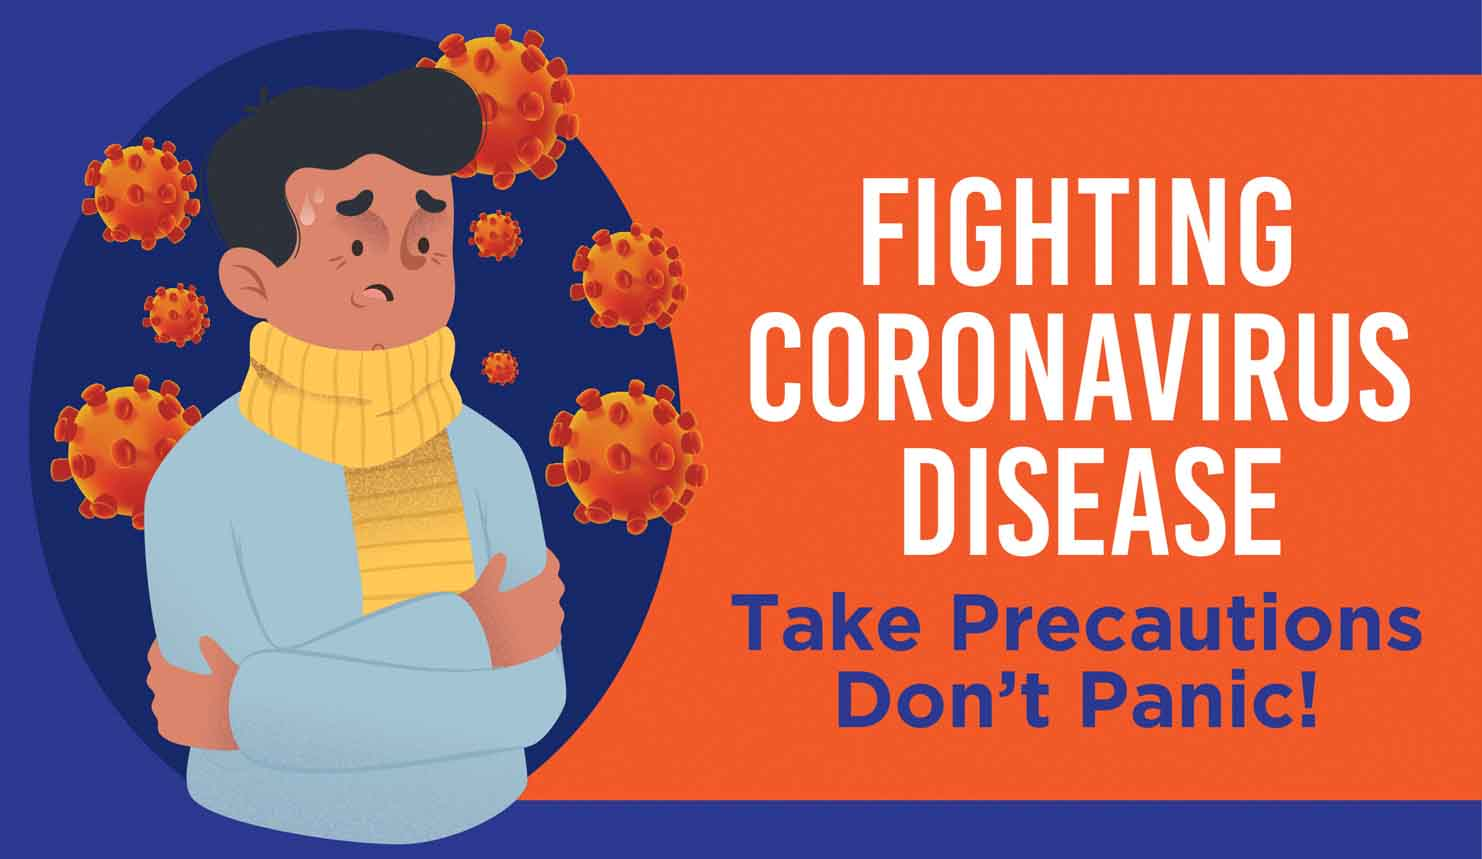 Fighting Coronavirus Disease: Take Precautions But Don't Panic